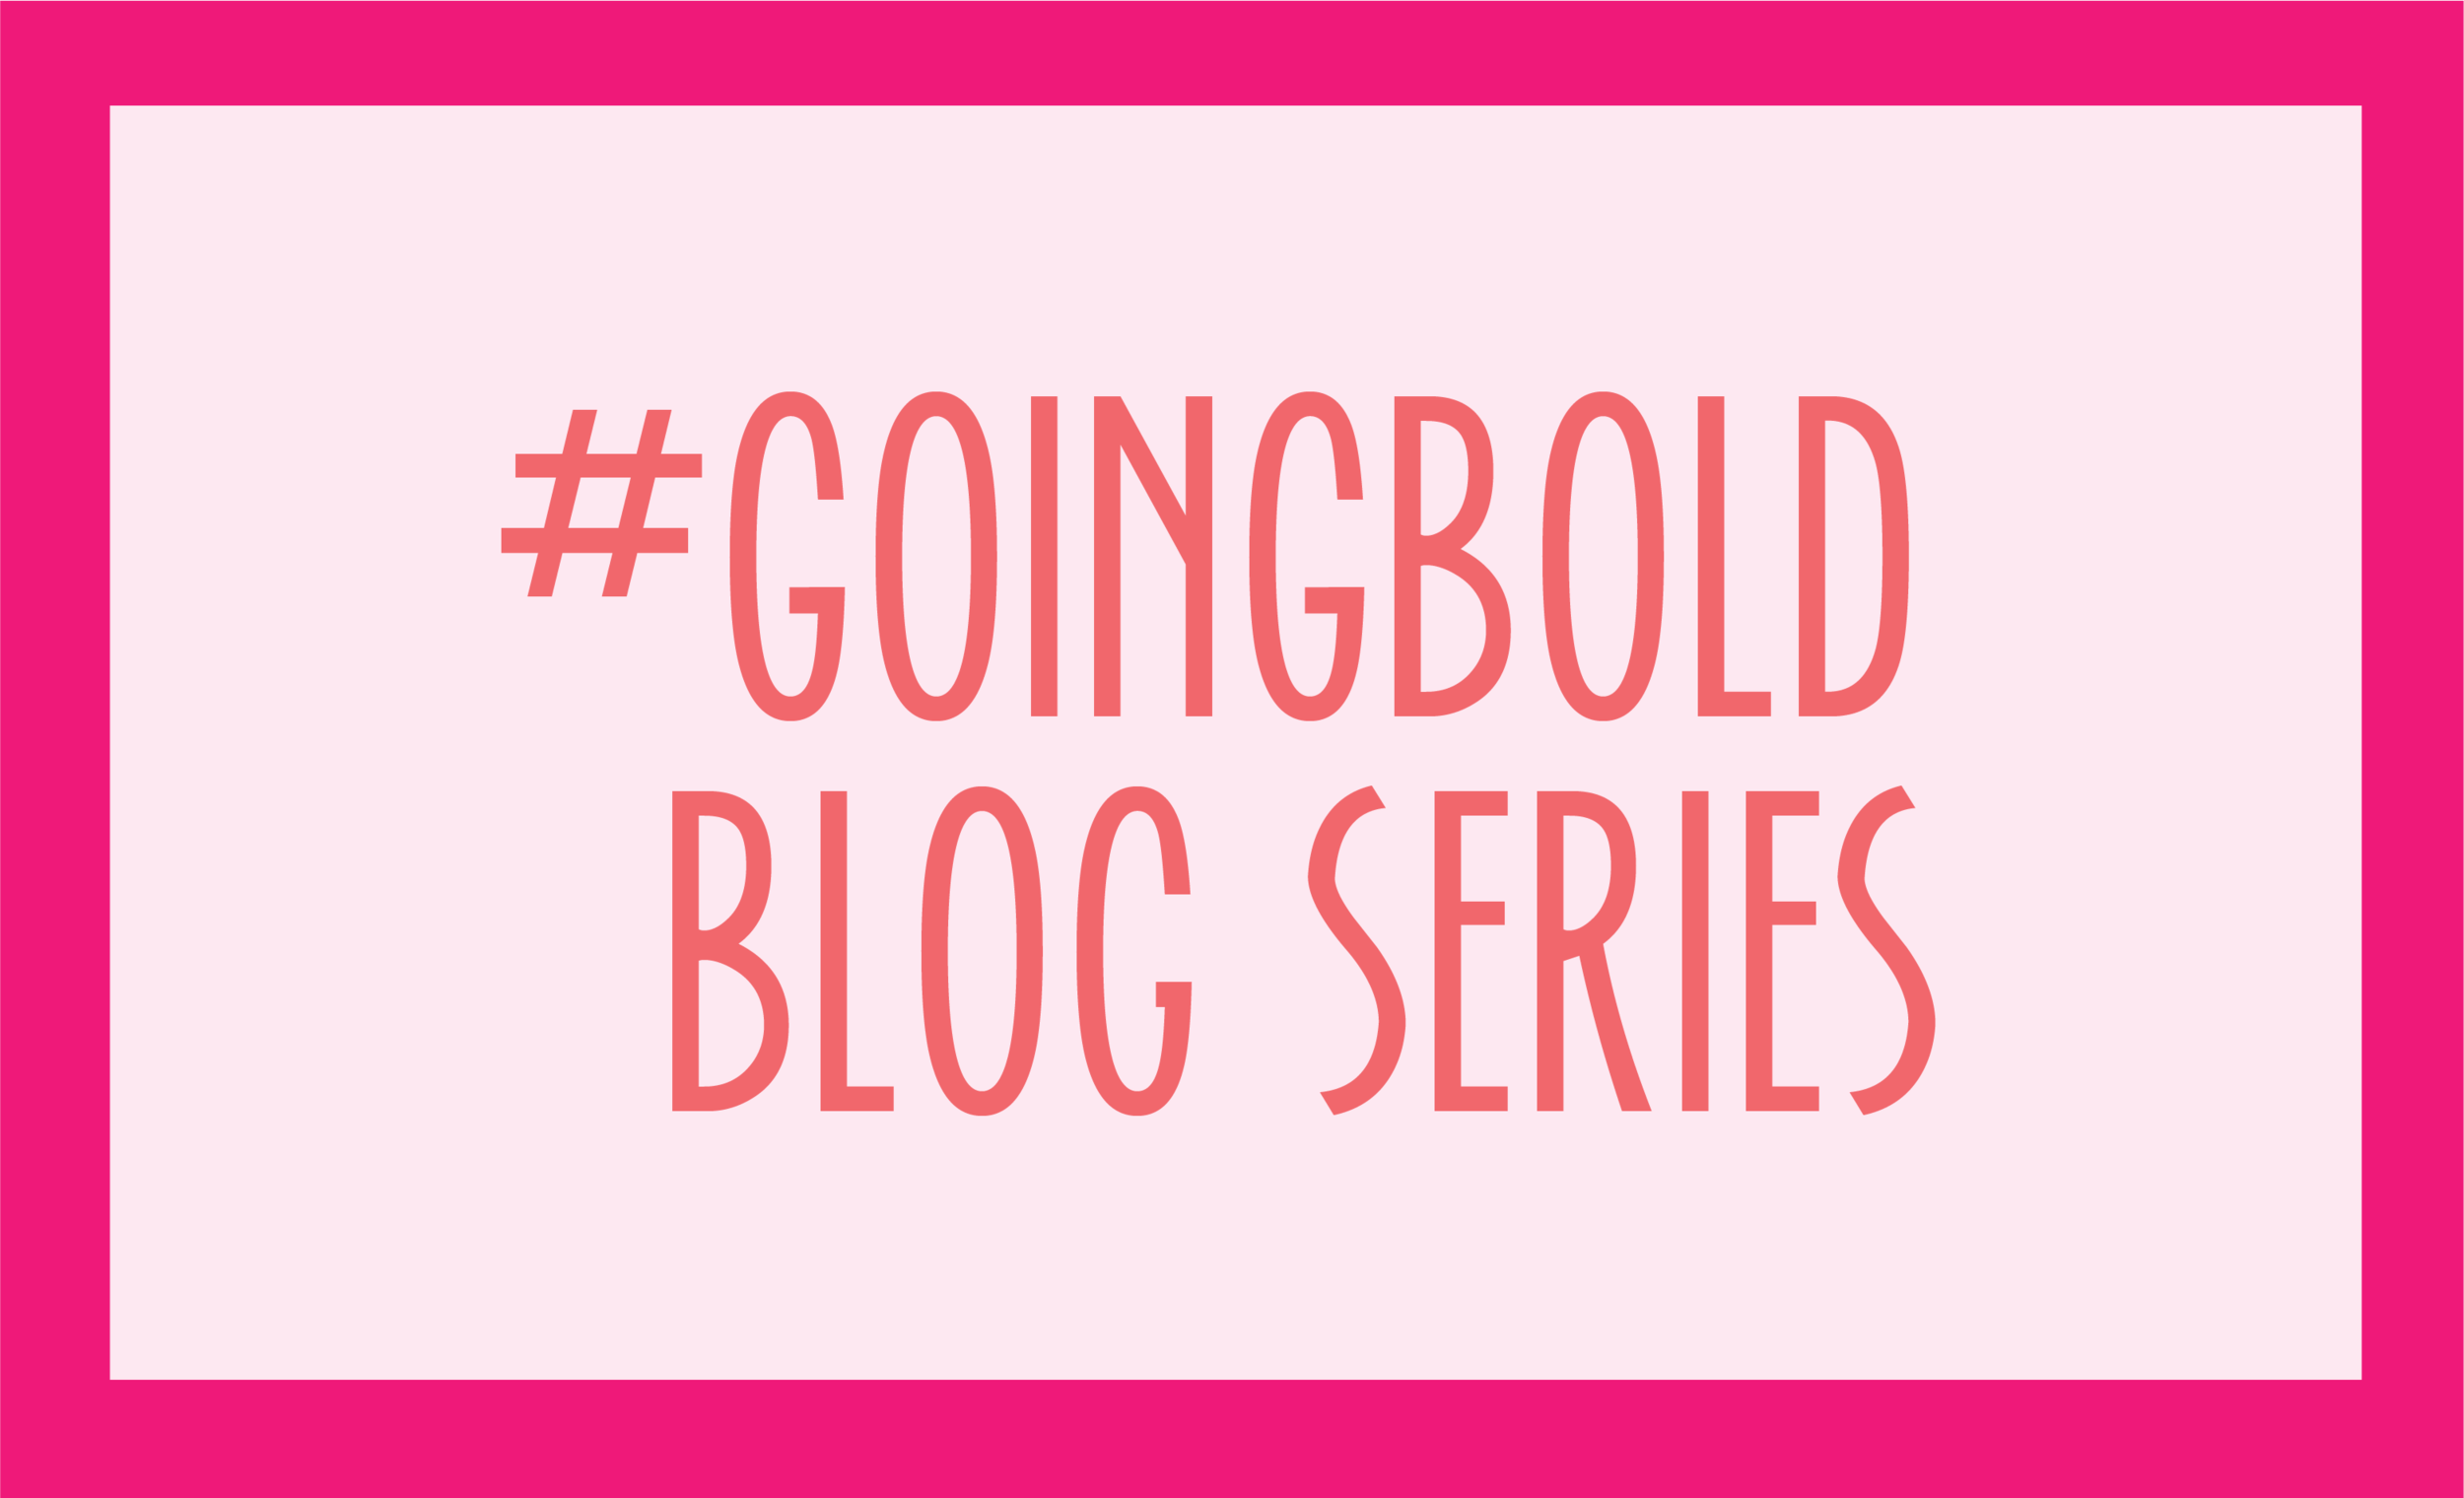 Bold & Pop : #GoingBold blog series featuring fellow business owners, side hustlers and bloggers